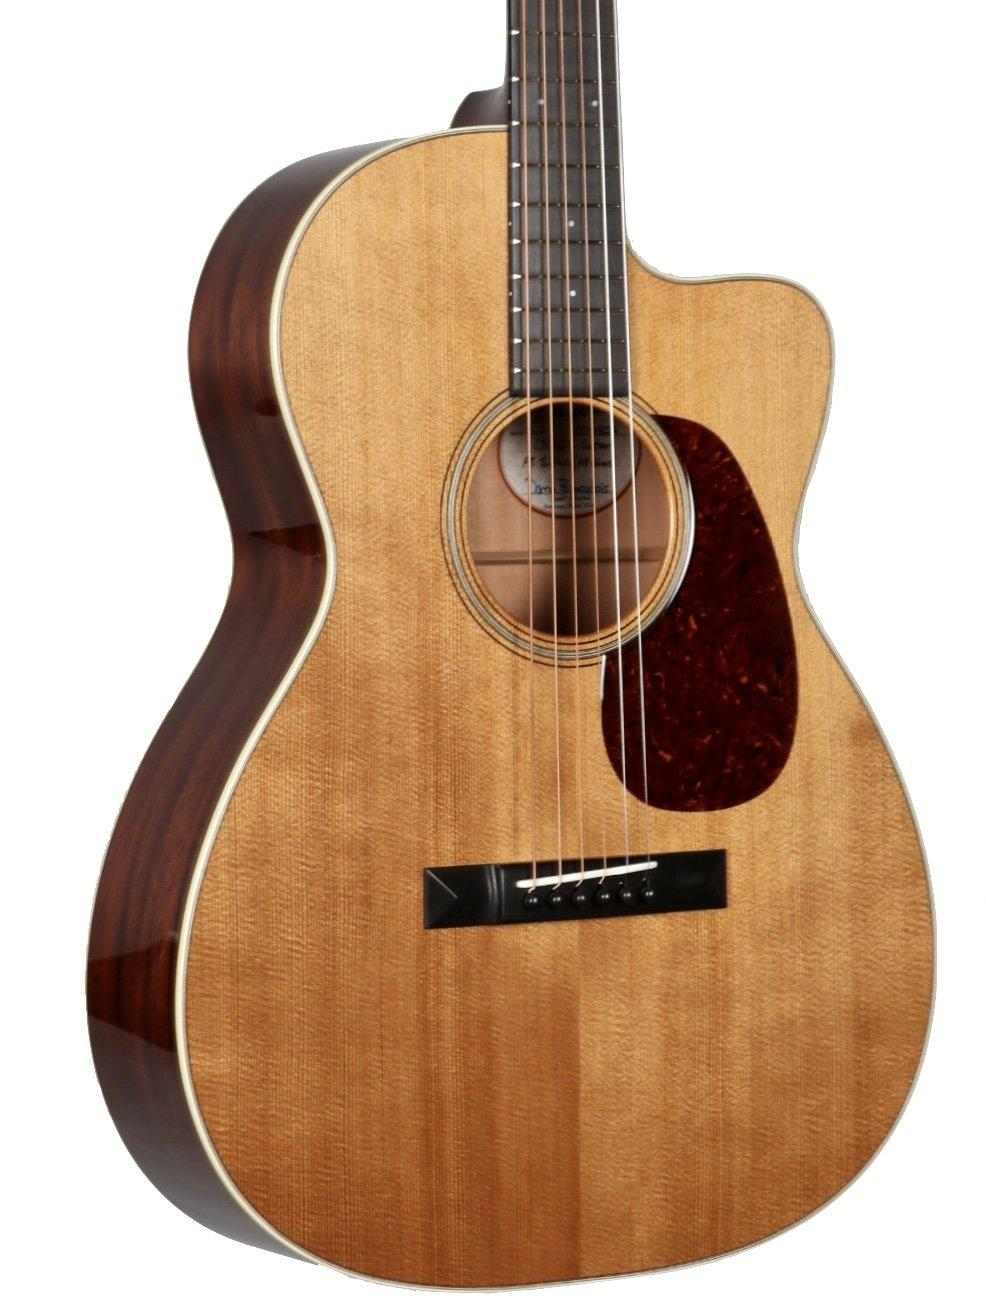 Bourgeois OMS Country Boy Heirloom Series Aged Tone Spruce/ Mahogany #8824 - Bourgeois Guitars - Heartbreaker Guitars